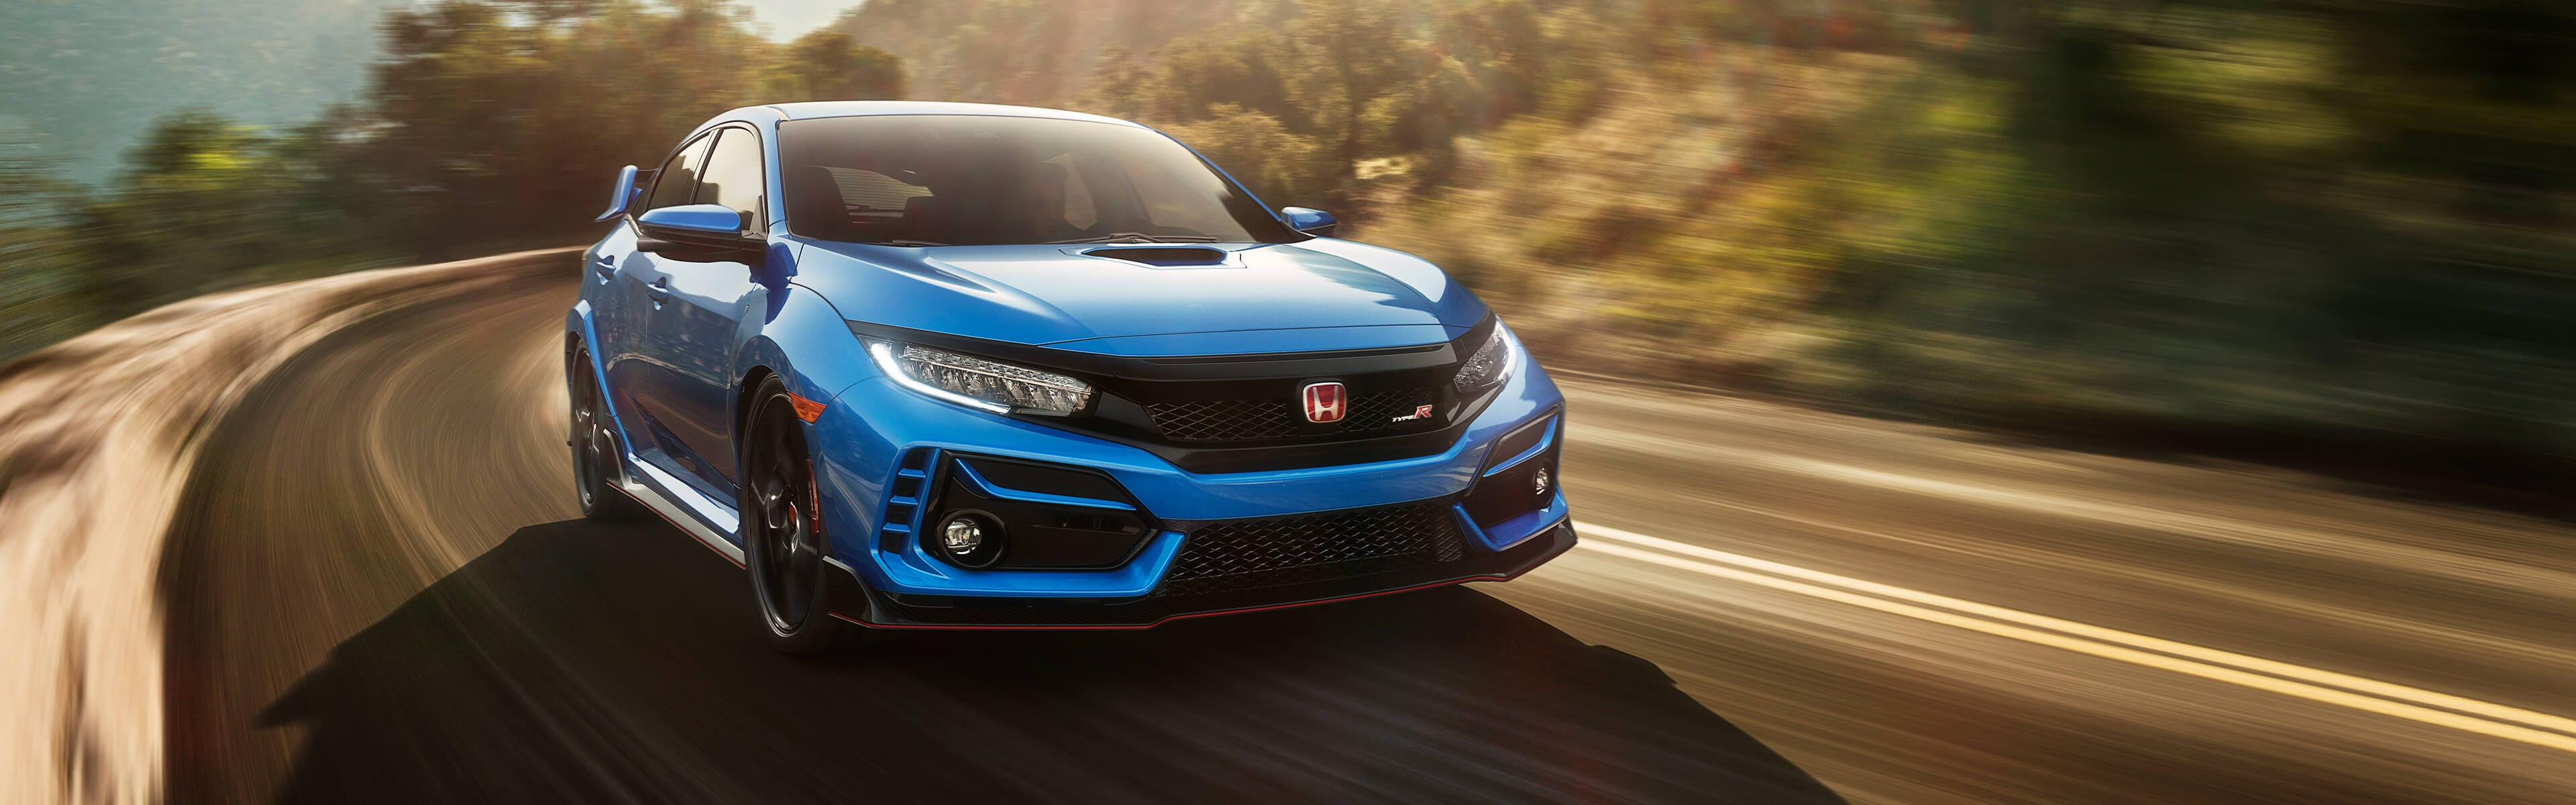 Front passenger-side view of the 2020 Honda Civic Type R Touring in Boost Blue Pearl, driving on a mountain road.